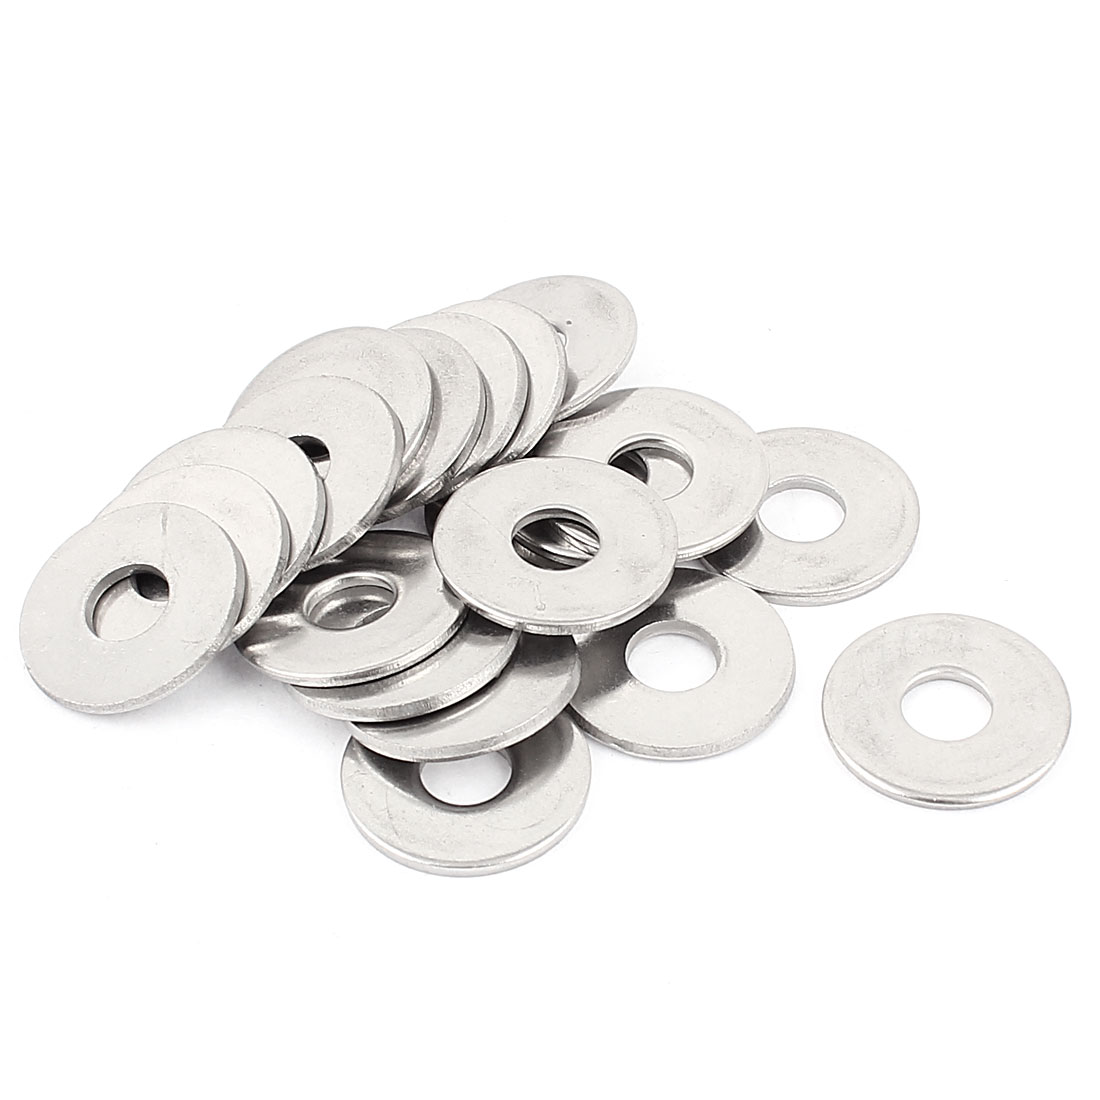 20pcs M8 304 Stainless Steel Flat Plain Washer Spacer Silver Tone